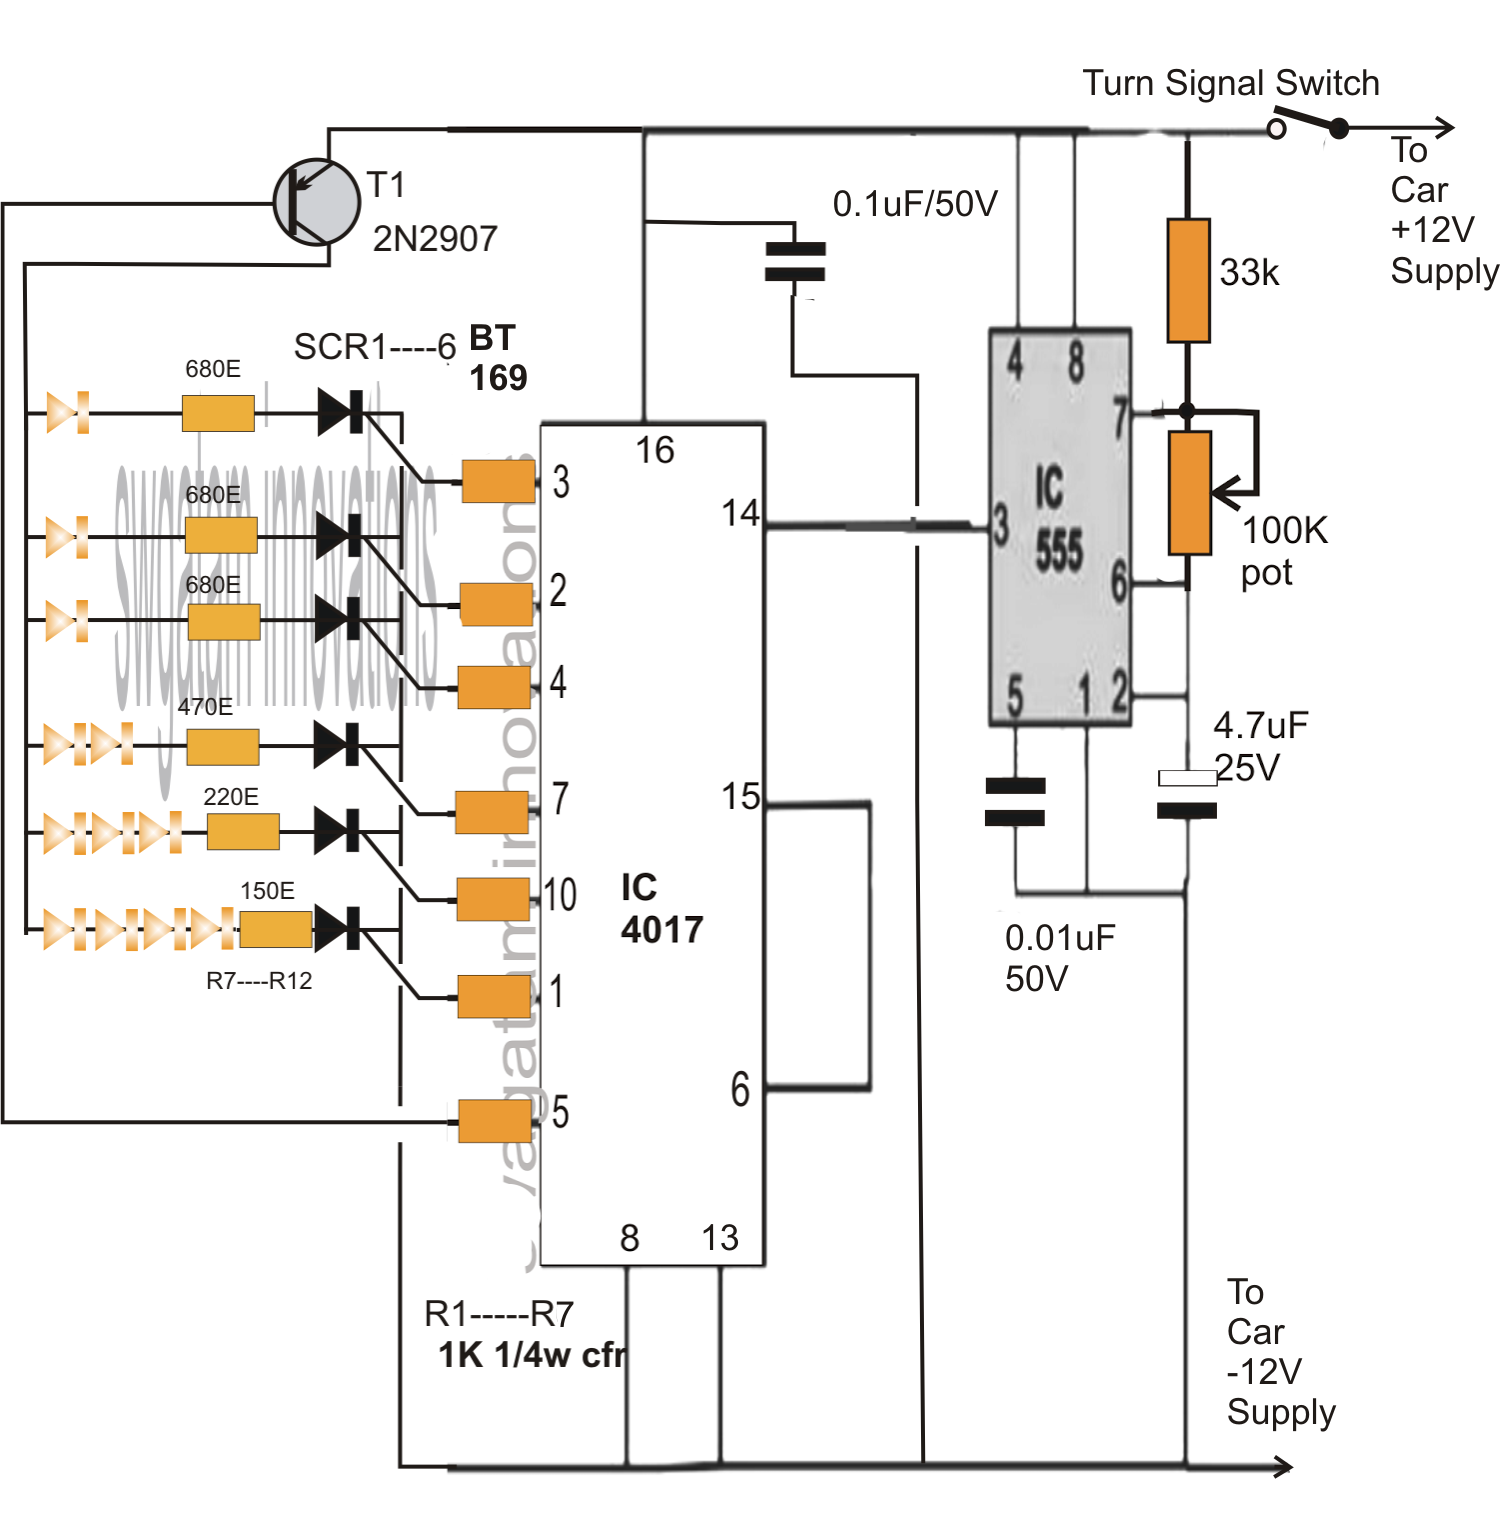 sequential bar graph turn light indicator circuit for car electronic turn signal flasher circuit turnsignal flasher schematic symbol [ 1500 x 1530 Pixel ]